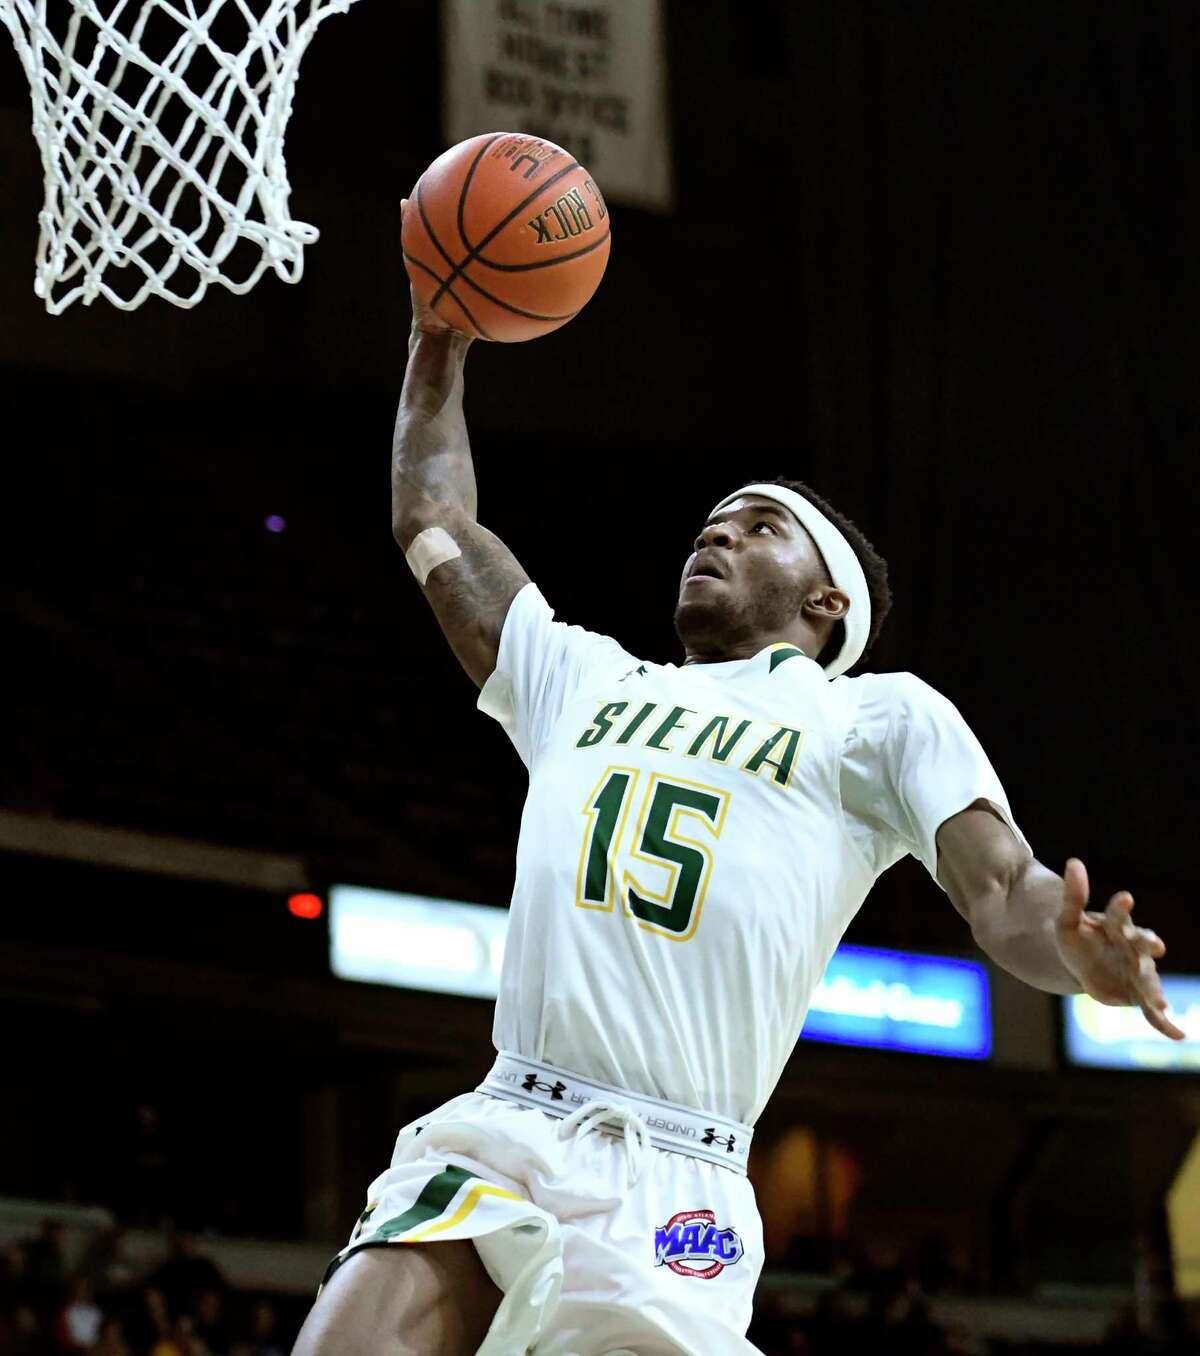 Siena's Nico Clareth dunks the ball on a breakaway during their basketball game against Vermont on Thursday, Dec. 29, 2016, at Times Union Center in Albany, N.Y. (Cindy Schultz / Times Union)